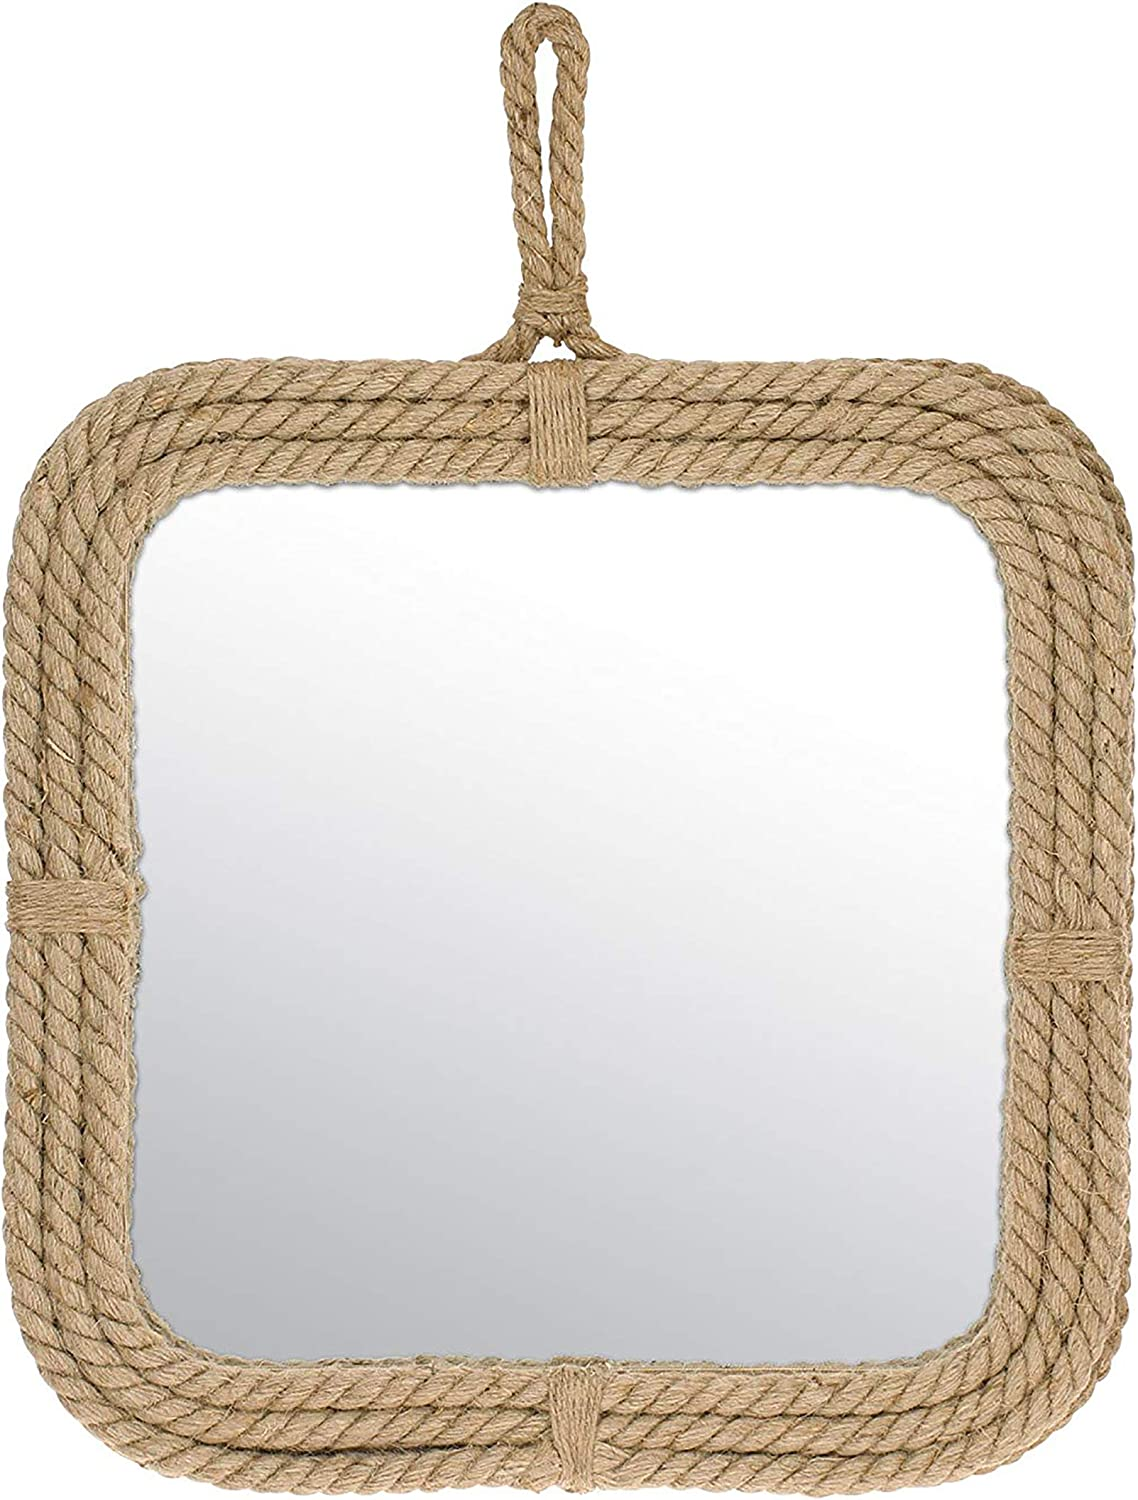 Stonebriar Small Square Rope Mirror for Wall, Light Weight, Rustic Decoration